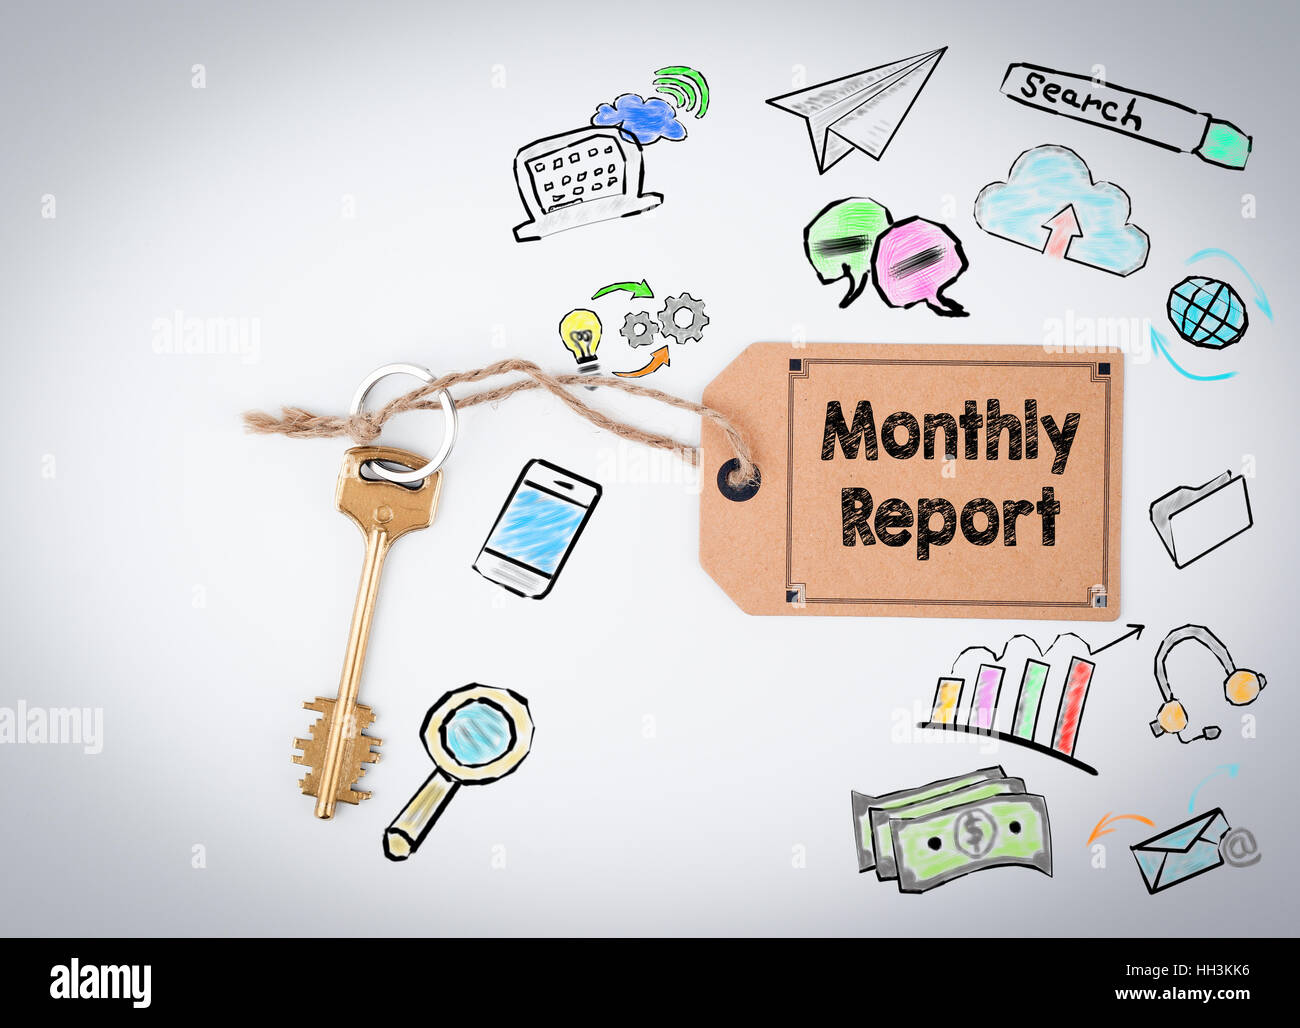 monthly report concept - Stock Image